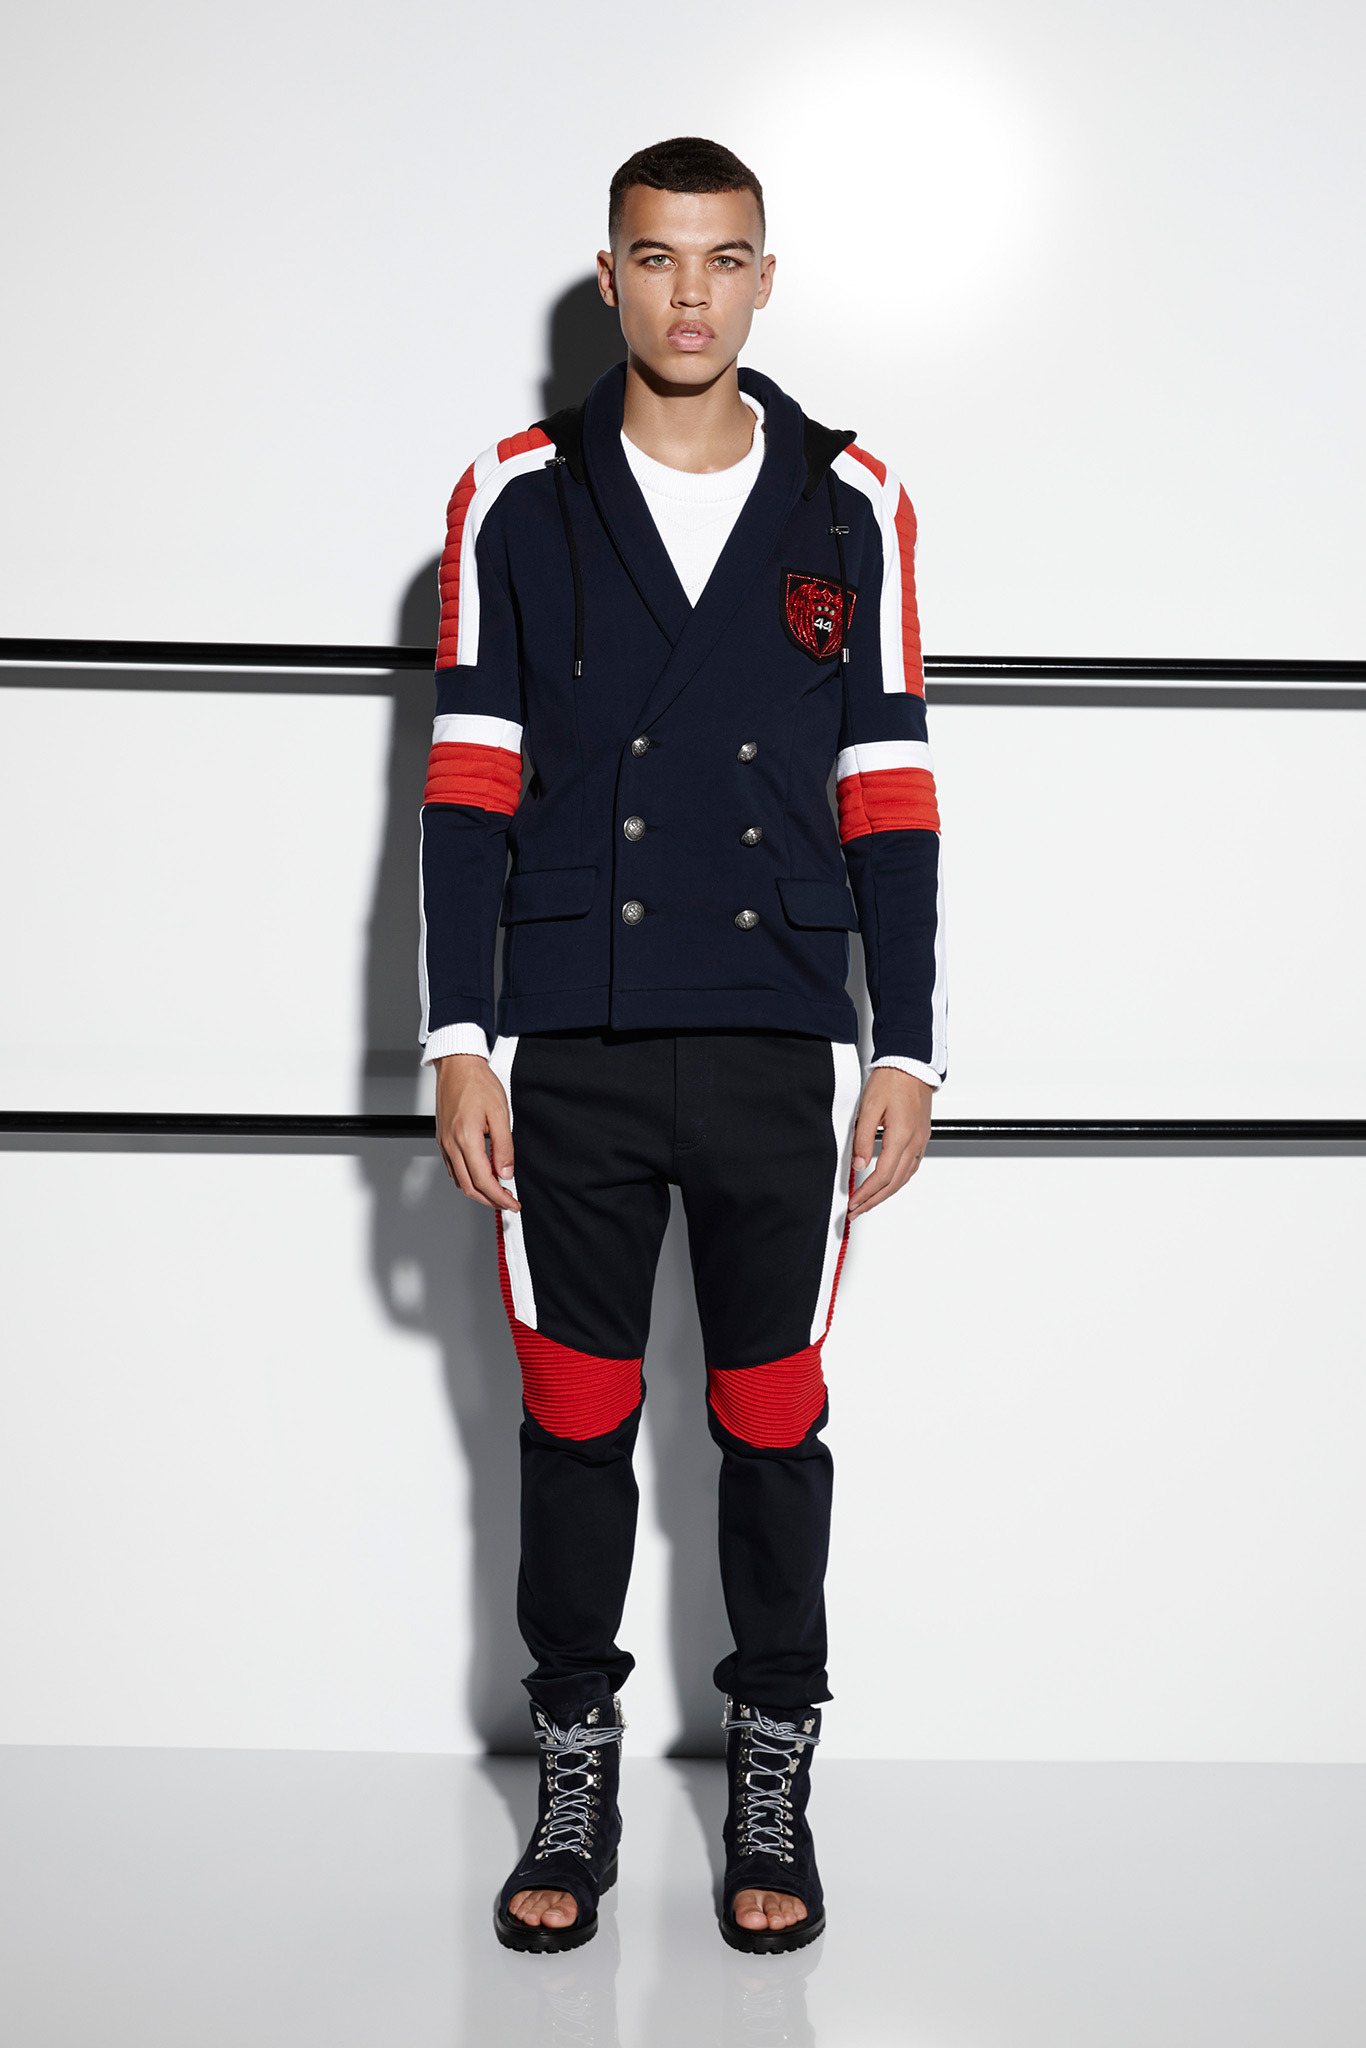 Balmain Clothing Balmain clothing for men captures a rebellious spirit and easy-going attitude. Established in , Balmain is a globally-celebrated French label, offering the most enviable selection of fashion pieces that will make anyone stand out from the crowd.